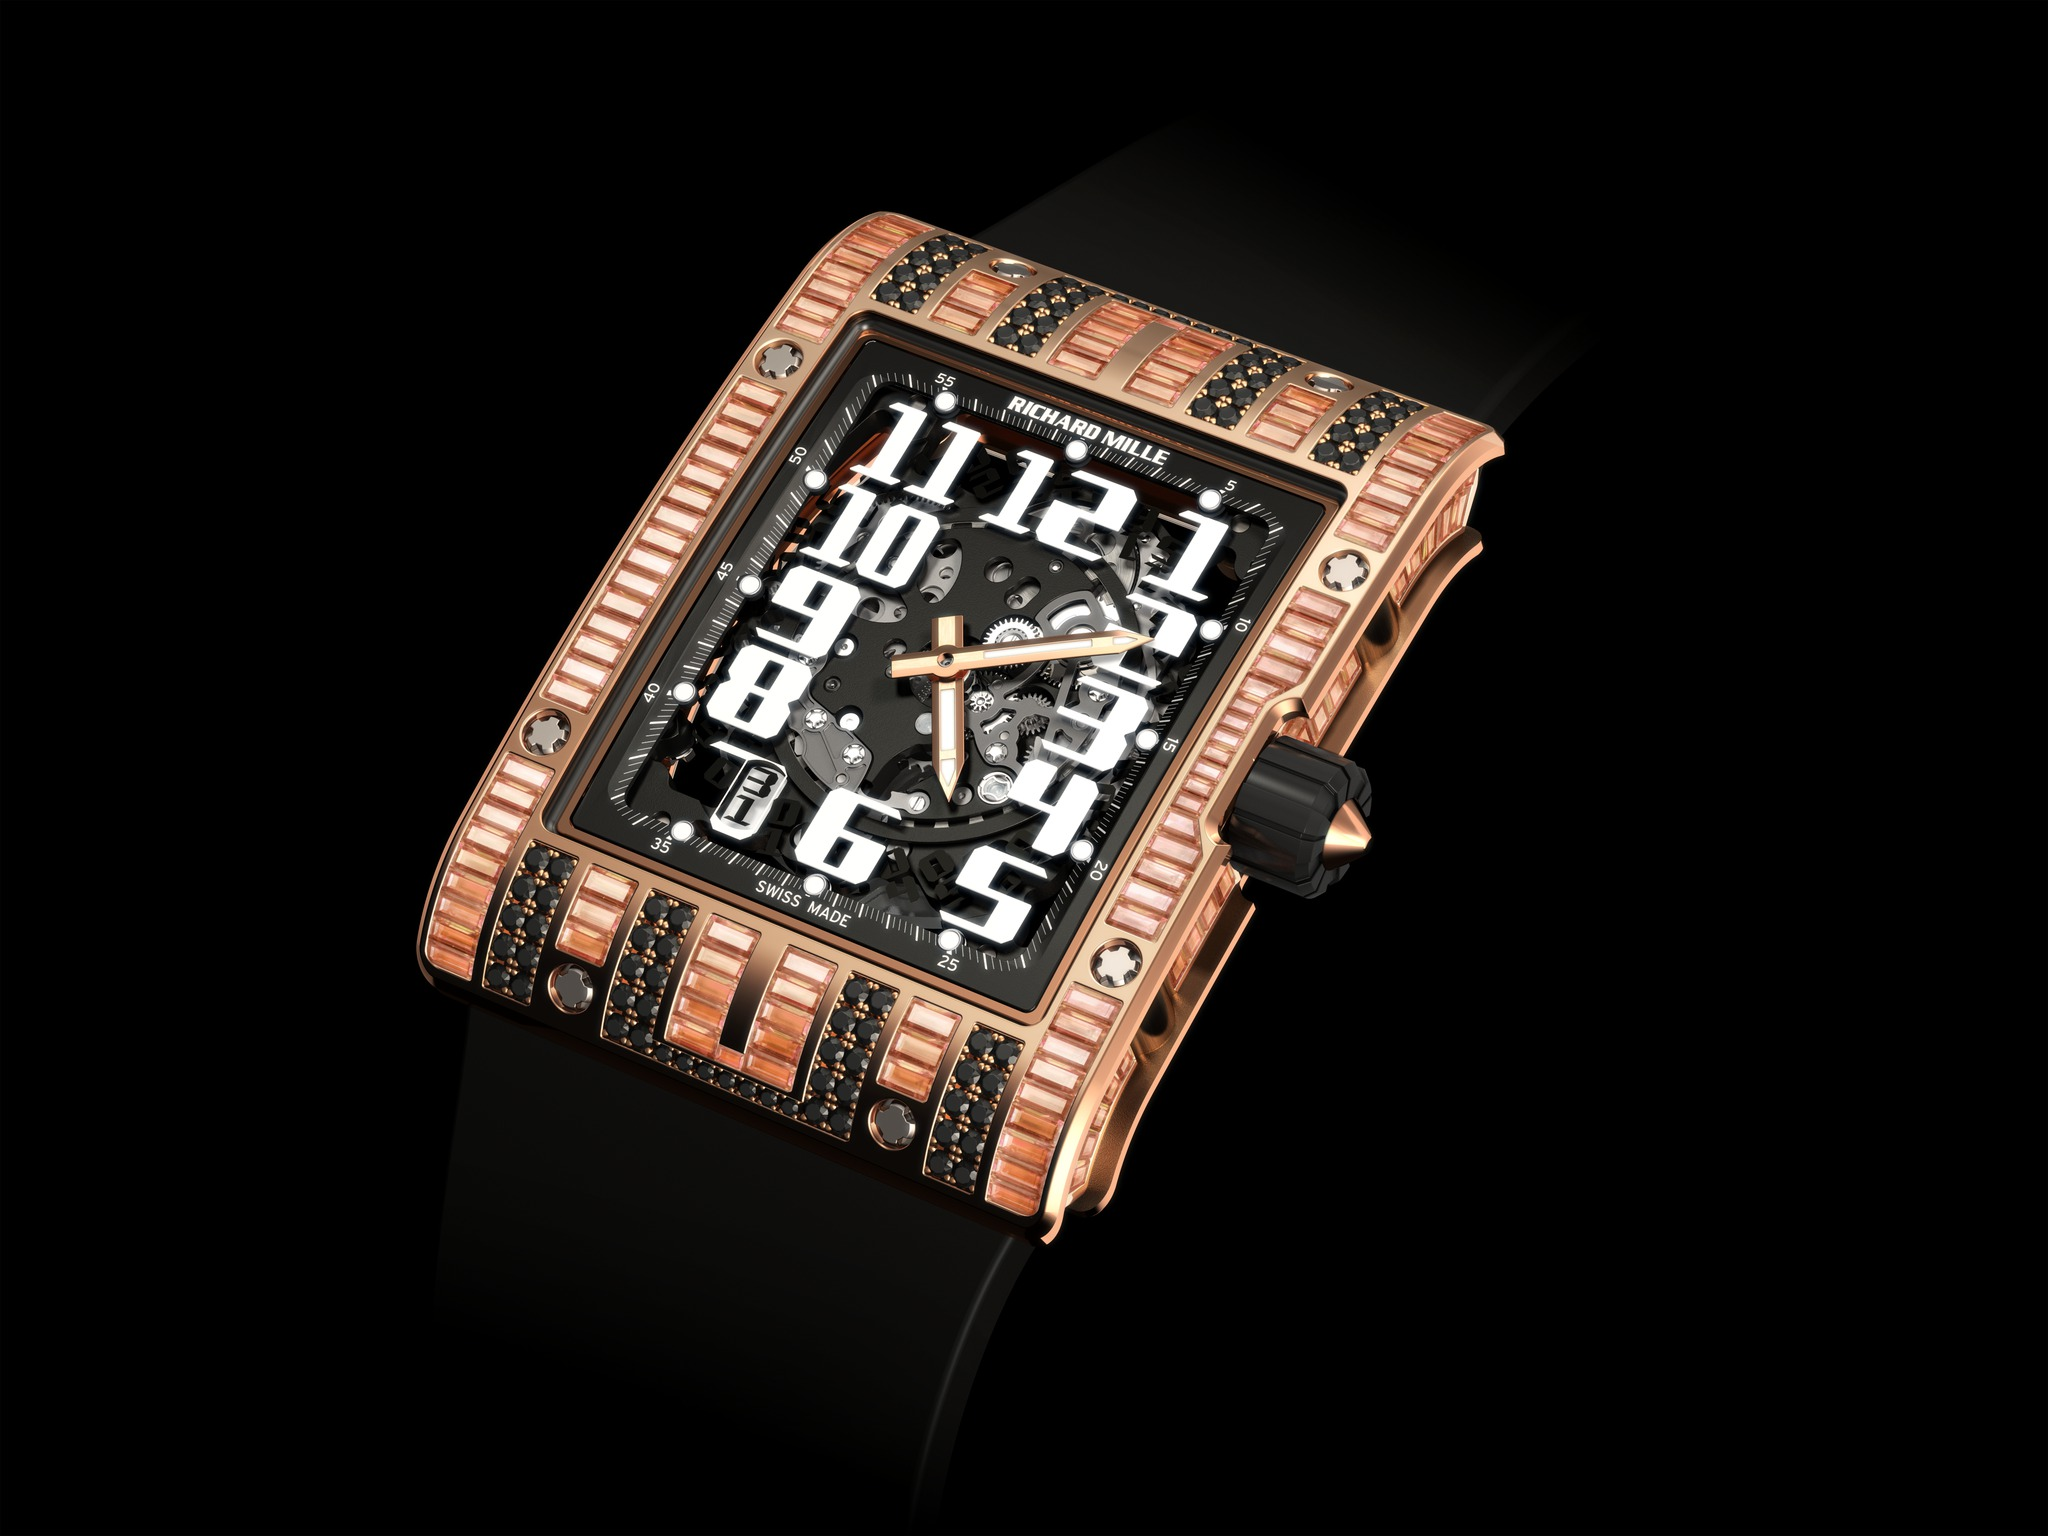 Replica Richard Mille RM 016 Automatic Mixte Diamonds Red Gold Watch